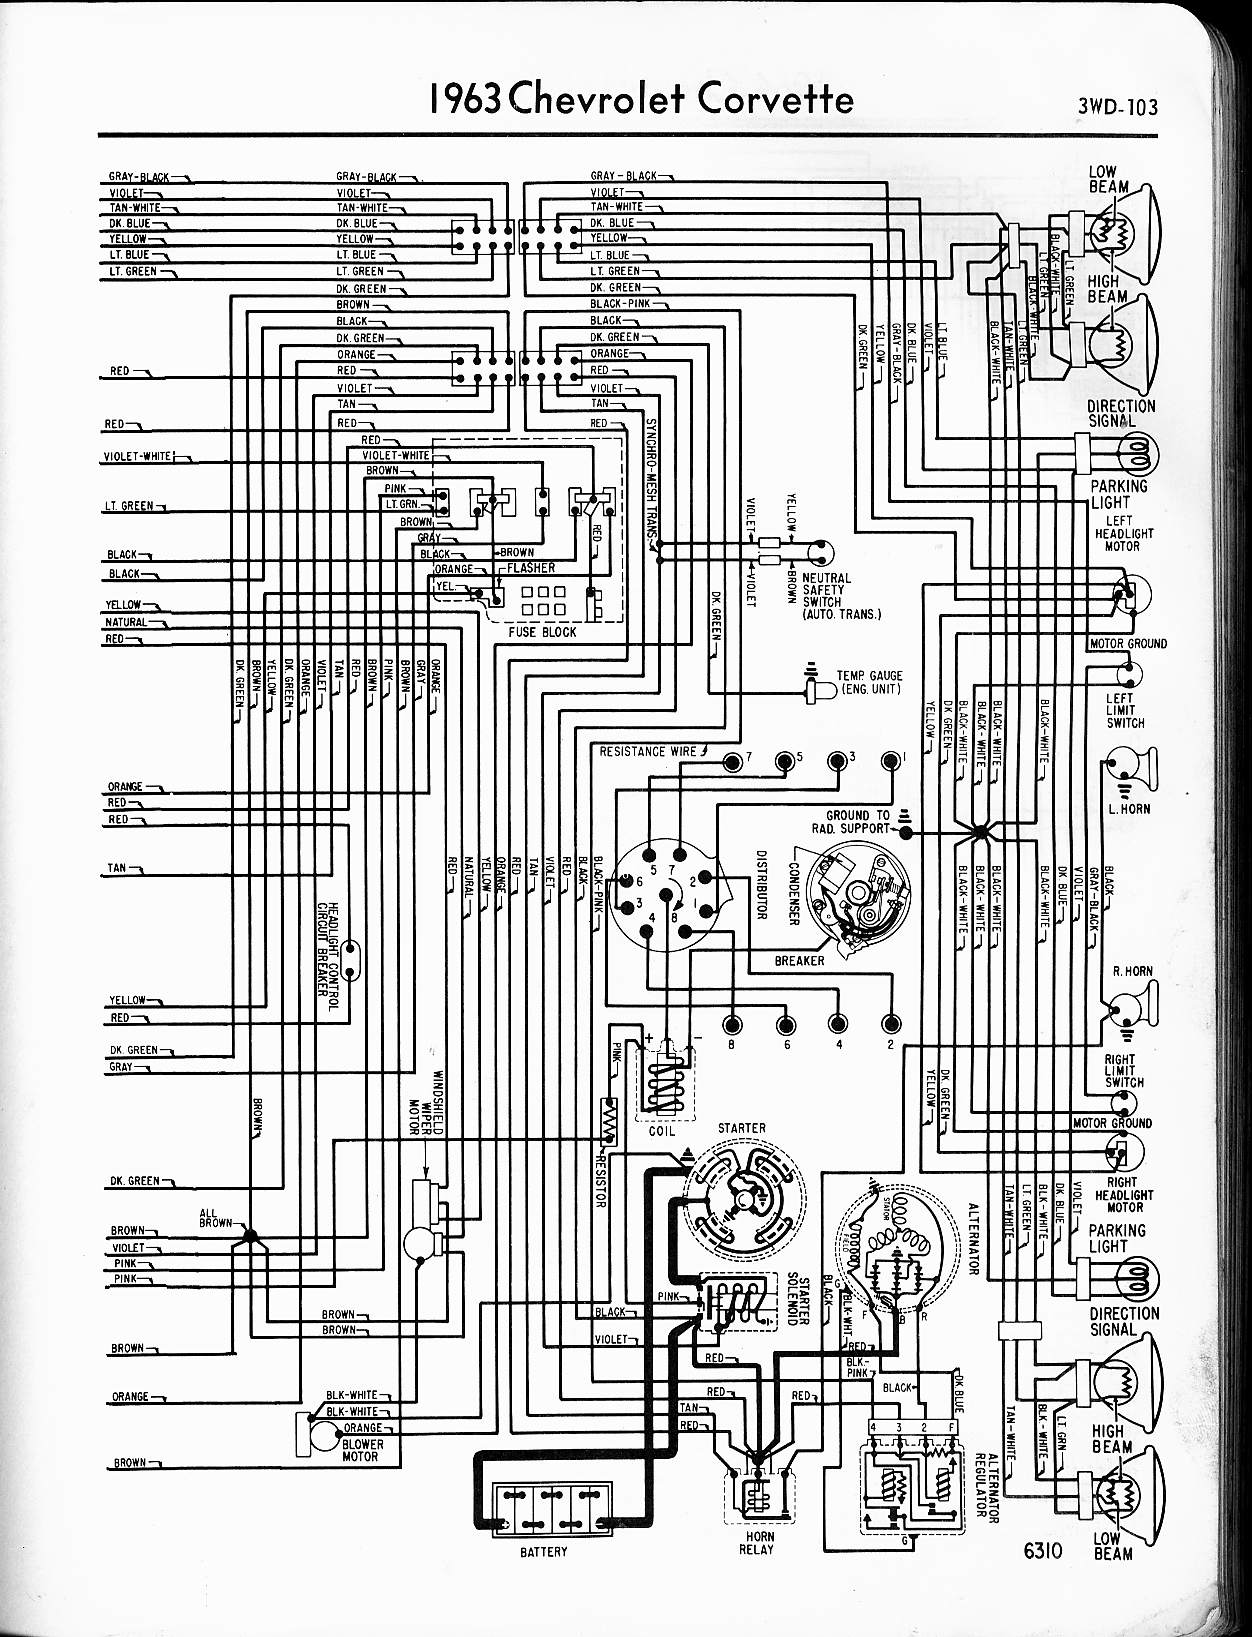 63 chevy wiring diagram box wiring diagram57 65 chevy wiring diagrams chevy nova wiring diagram 63 chevy wiring diagram